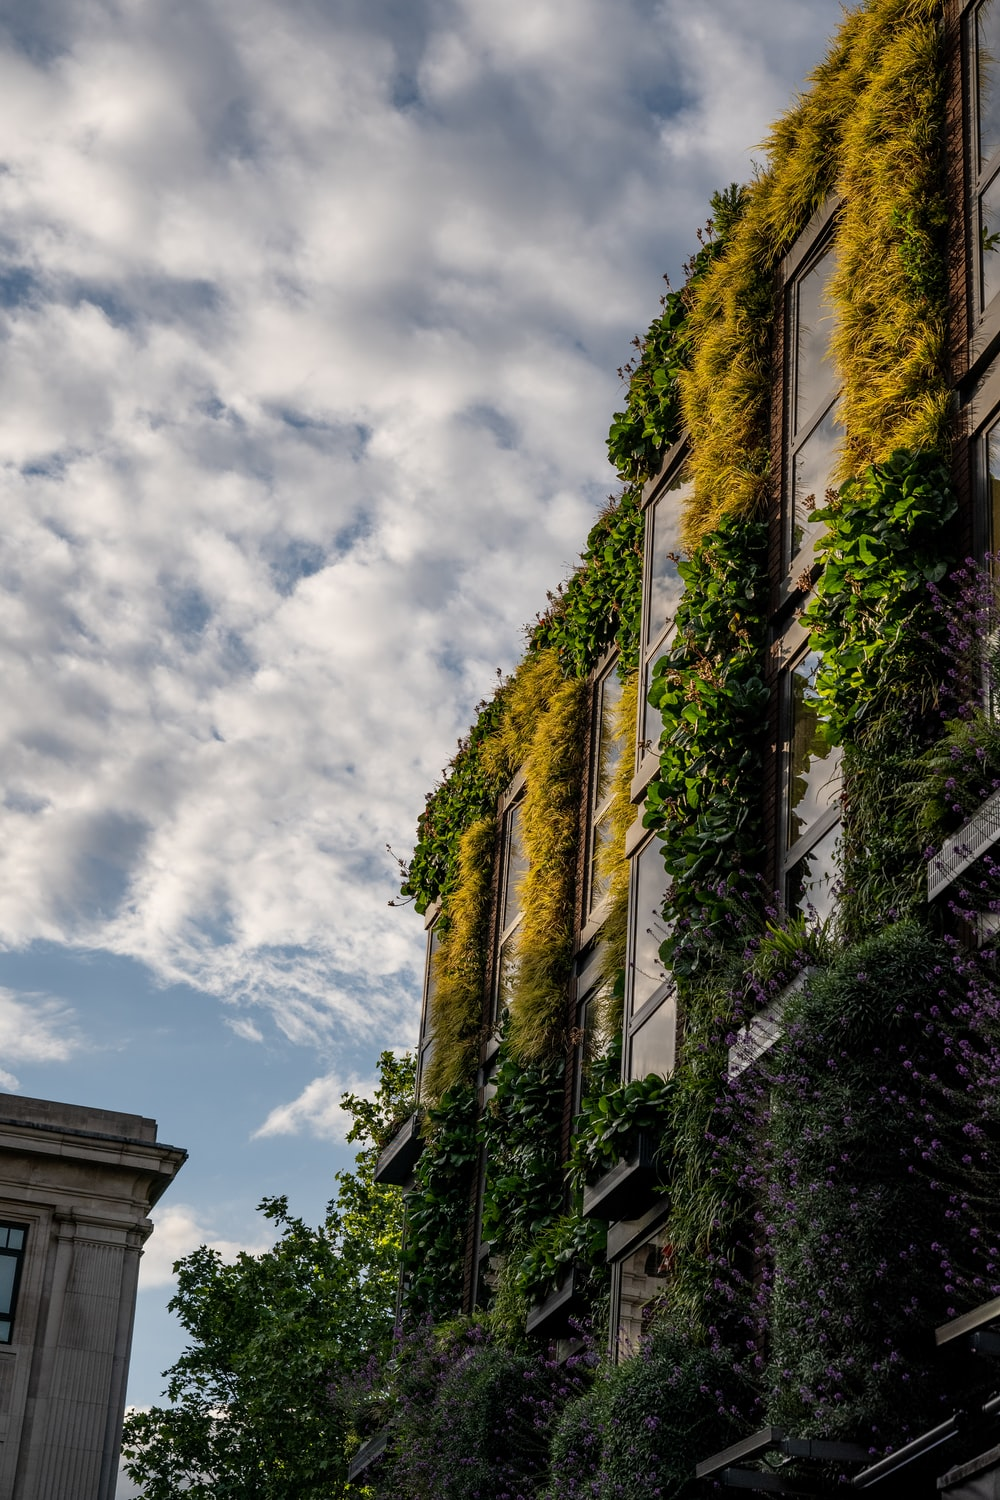 green ivy plants growing on side of building